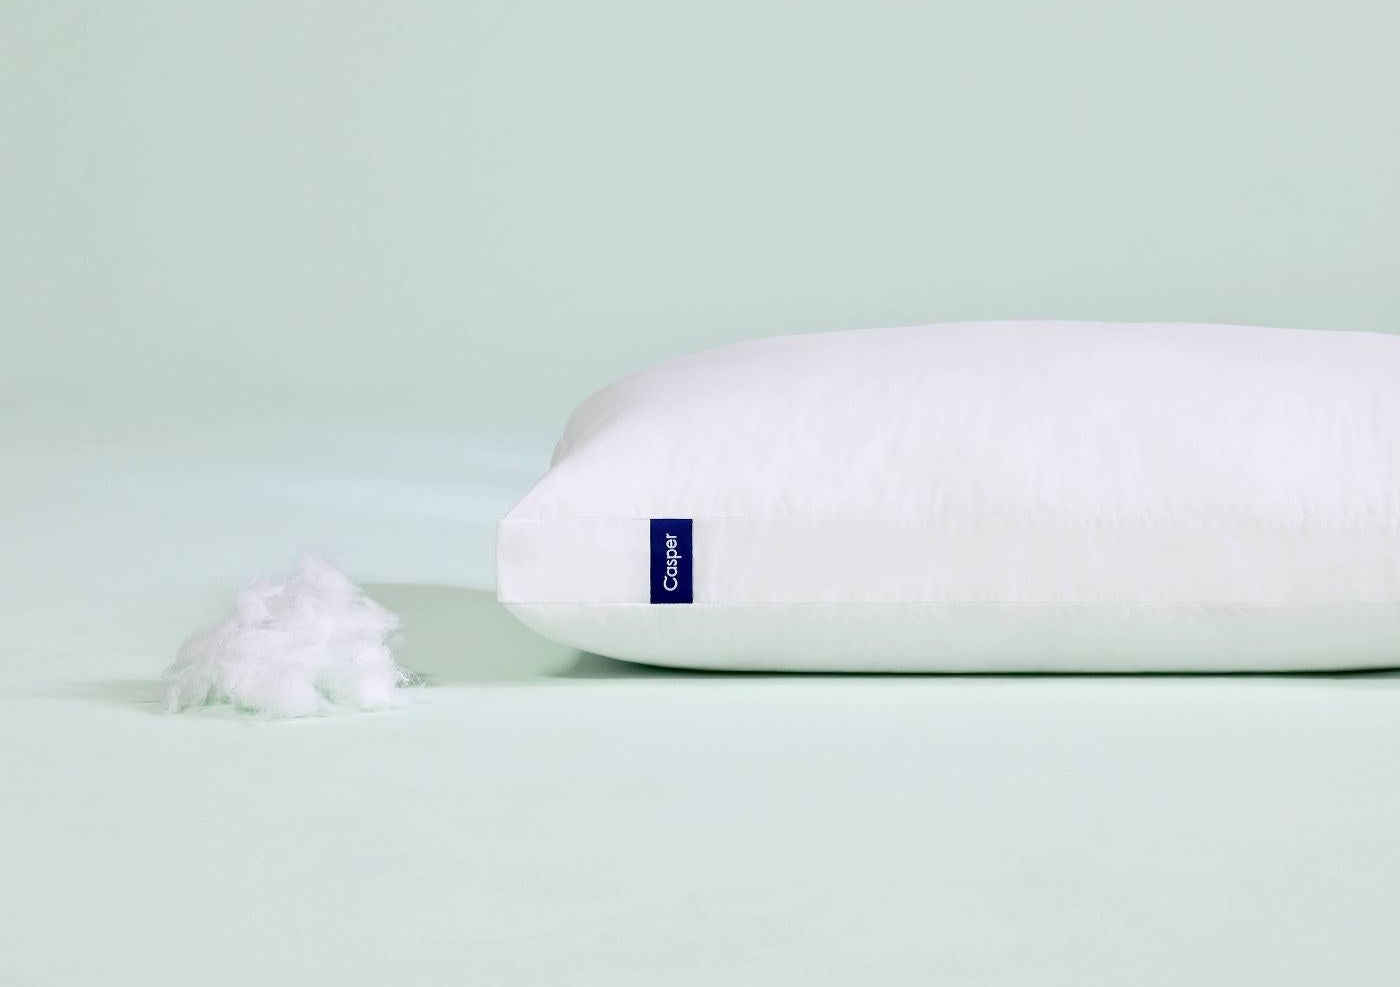 The Casper pillow next to a mound of stuffing to show its inside contents